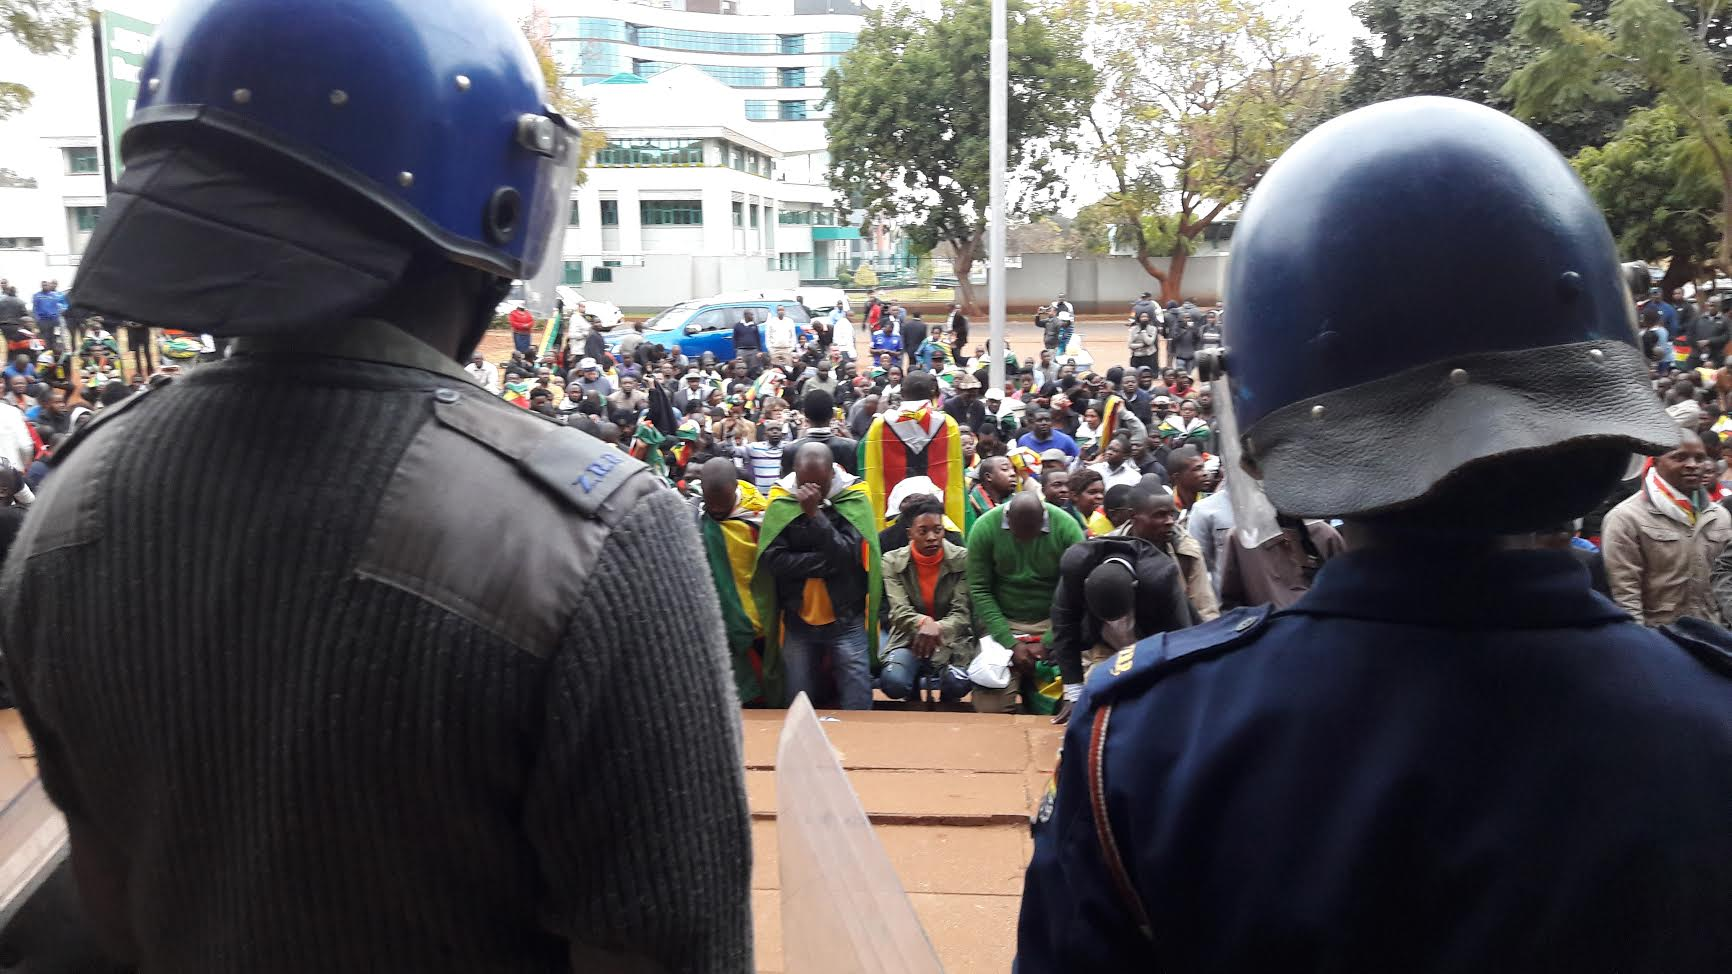 Zimbabwean police watch as protesters gather outside the court. Credit: Simon Allison.